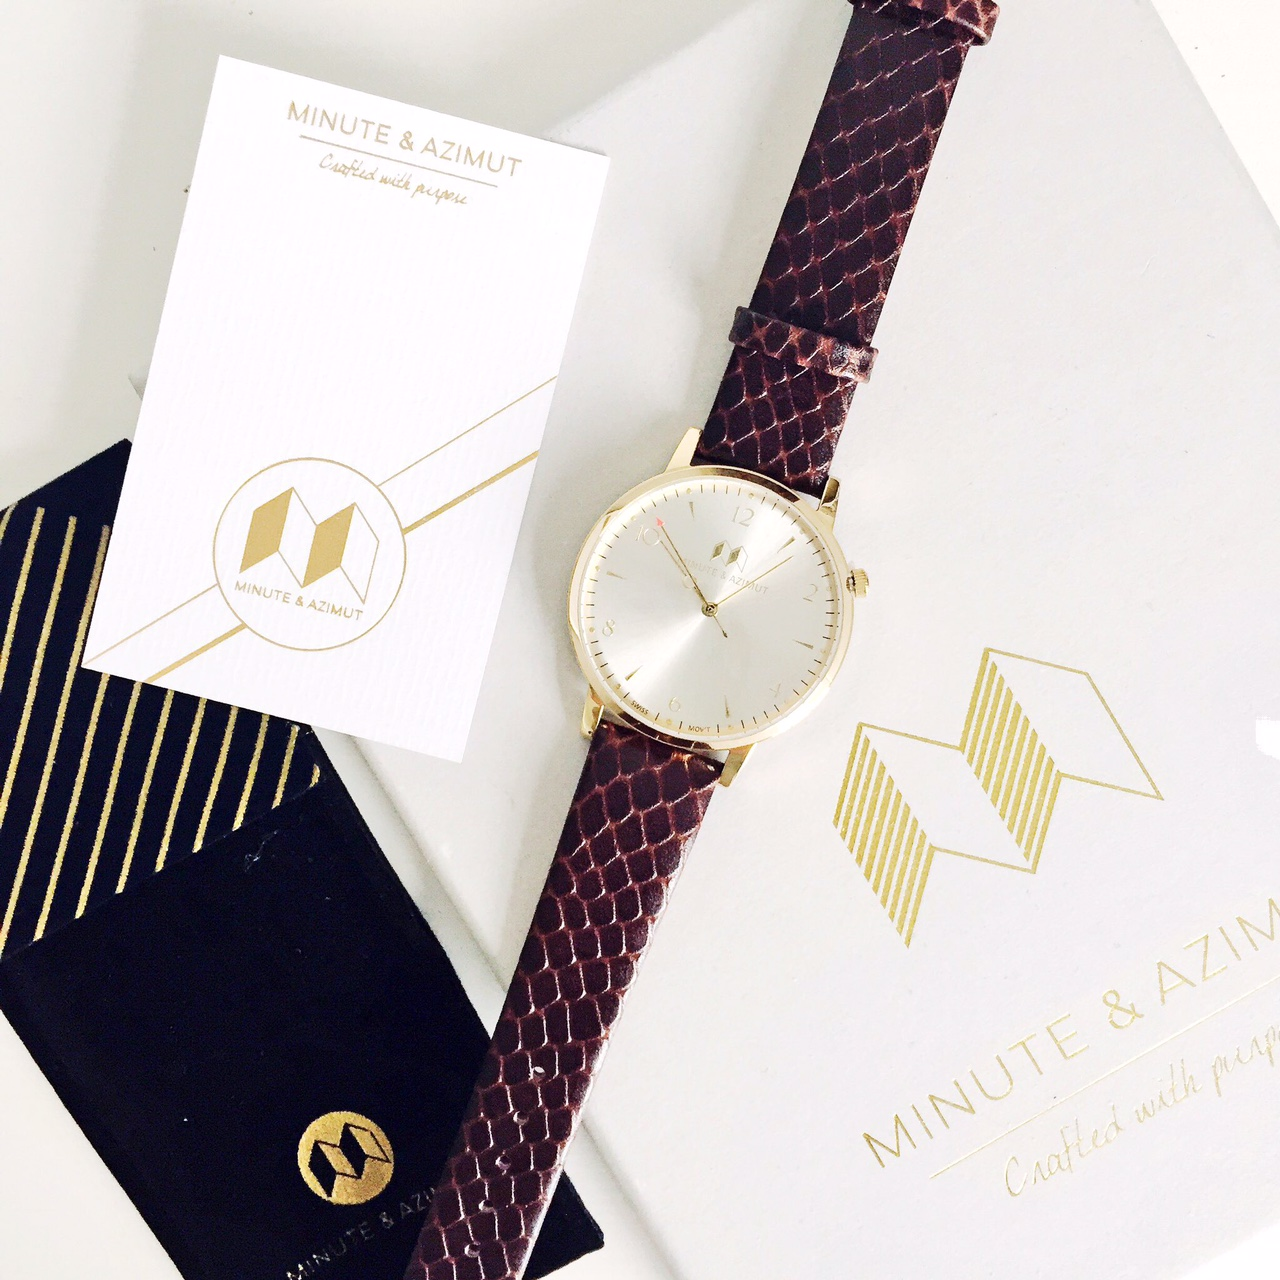 Minute and Azimut watches